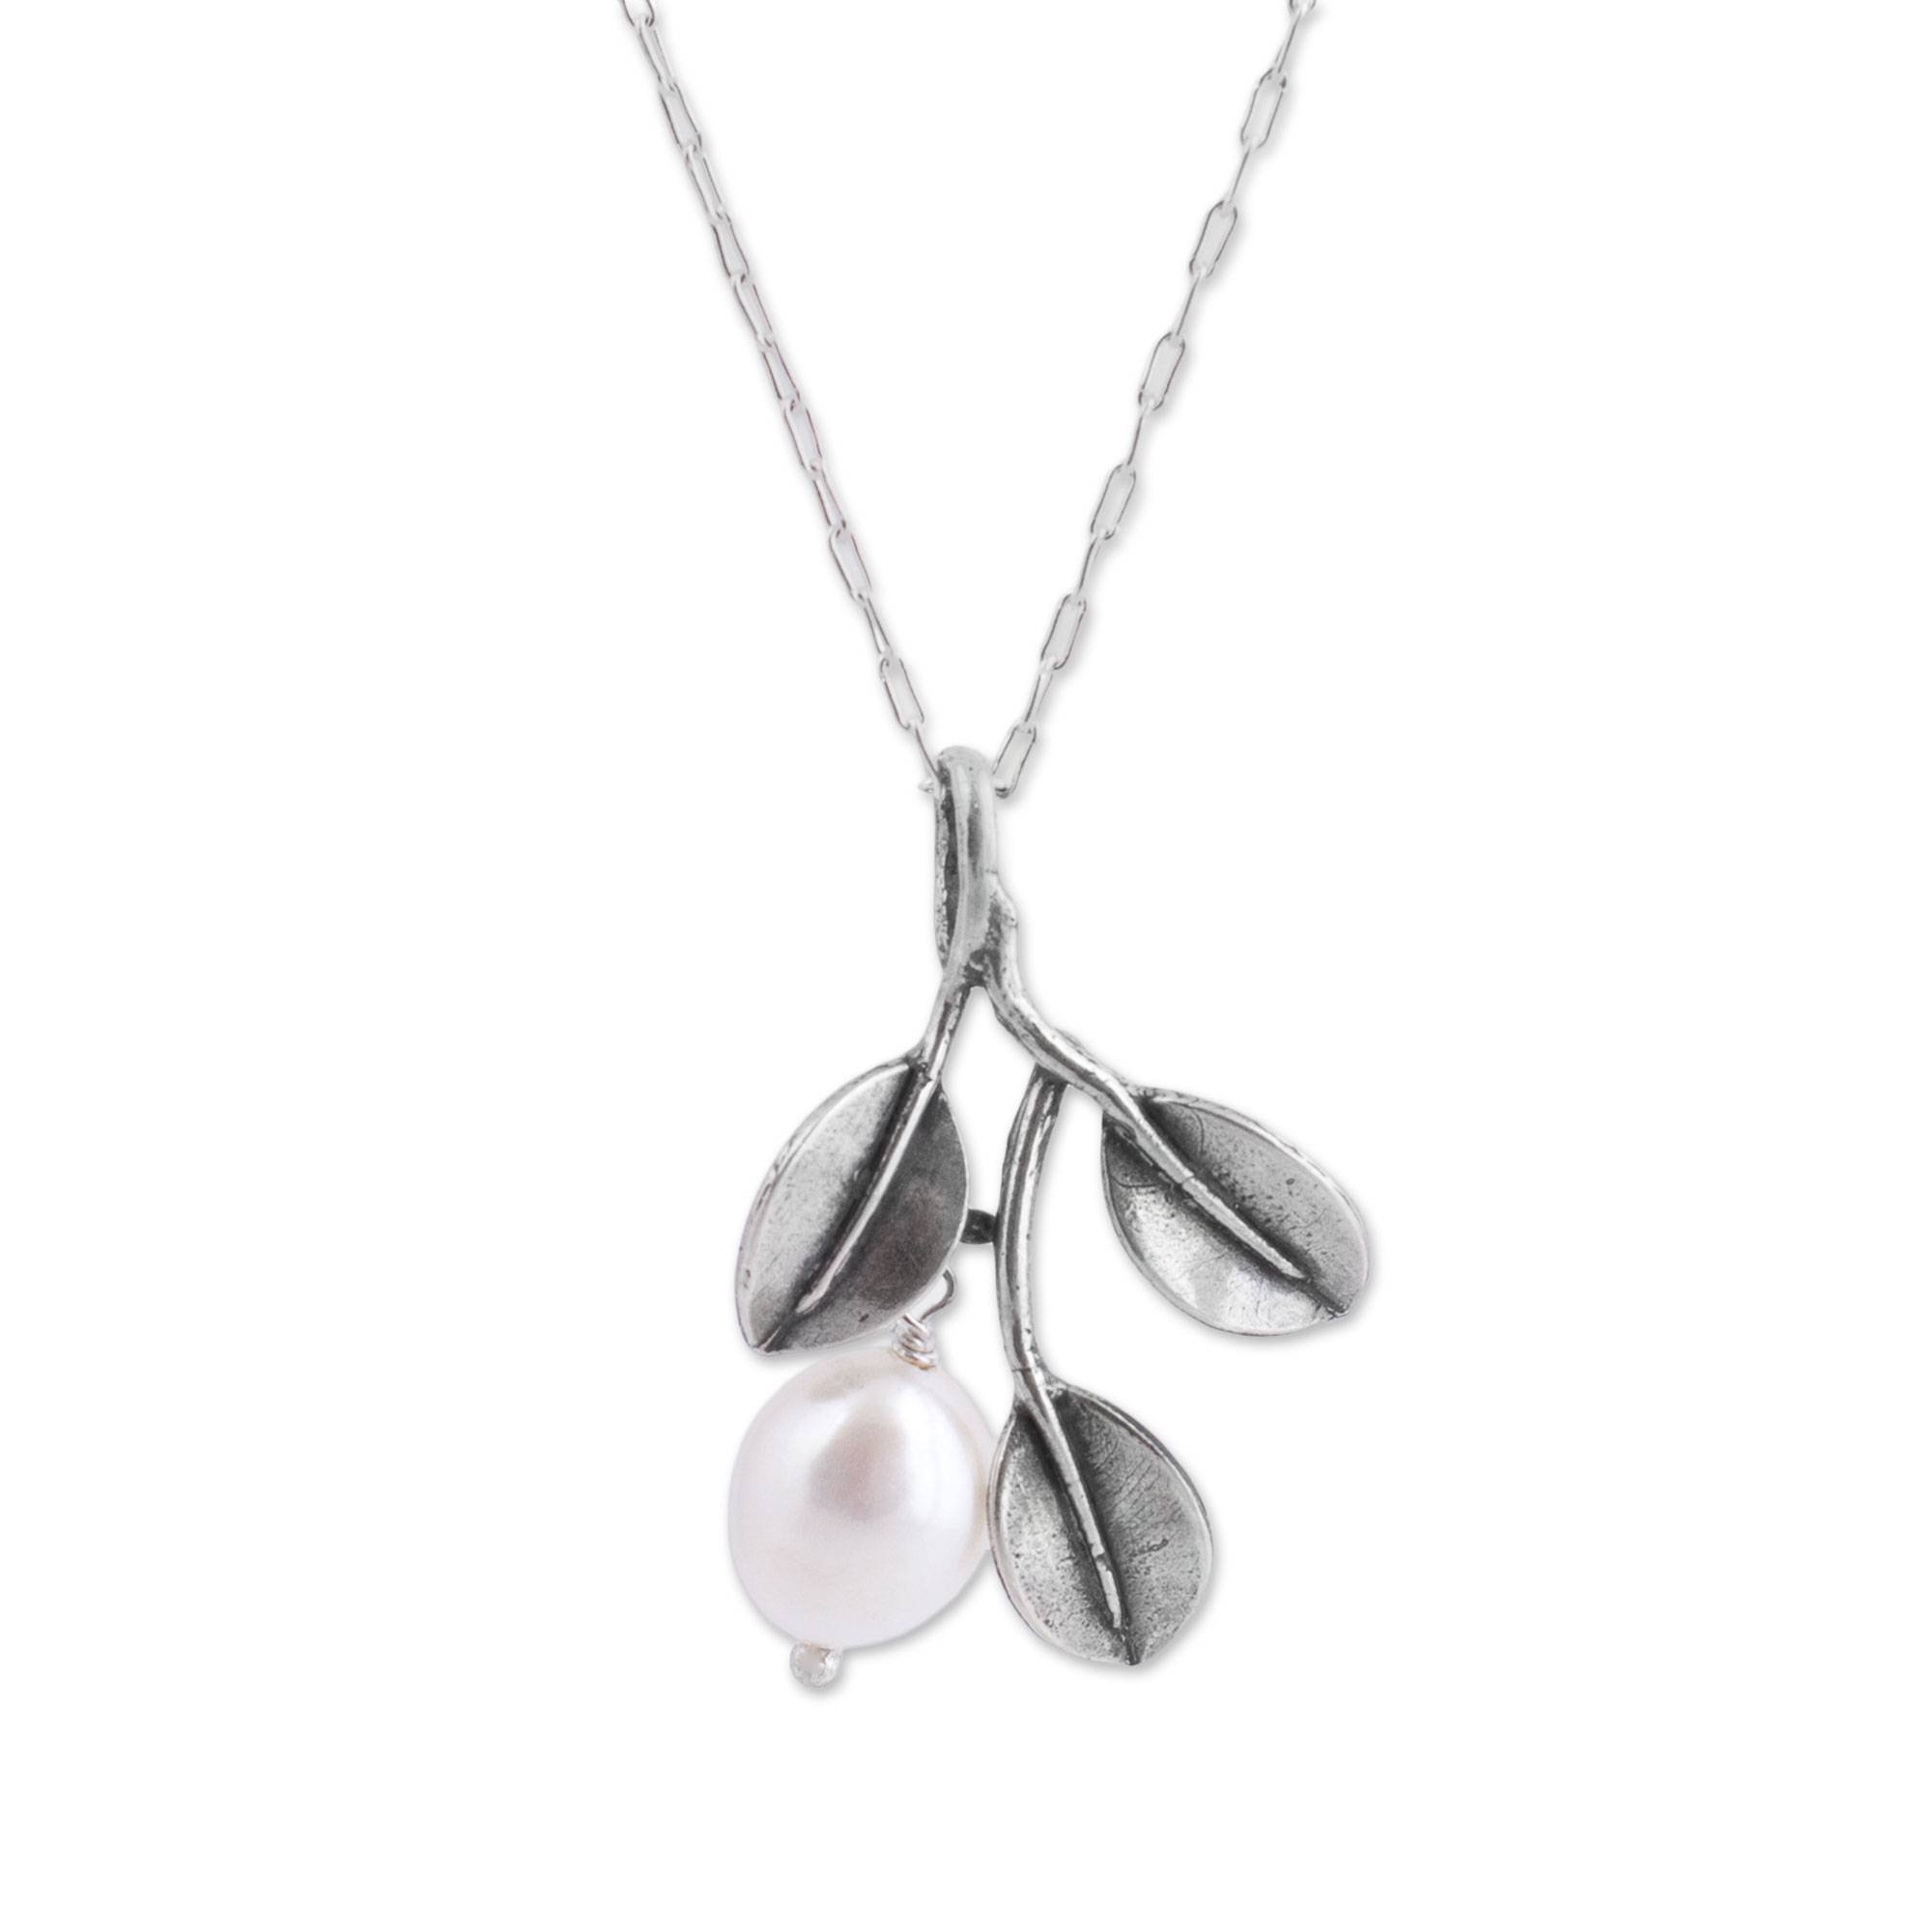 NOVICA Cream Cultured Freshwater Pearl .925 Sterling Silver Necklace, 20.5'', 'Iridescent Pear'